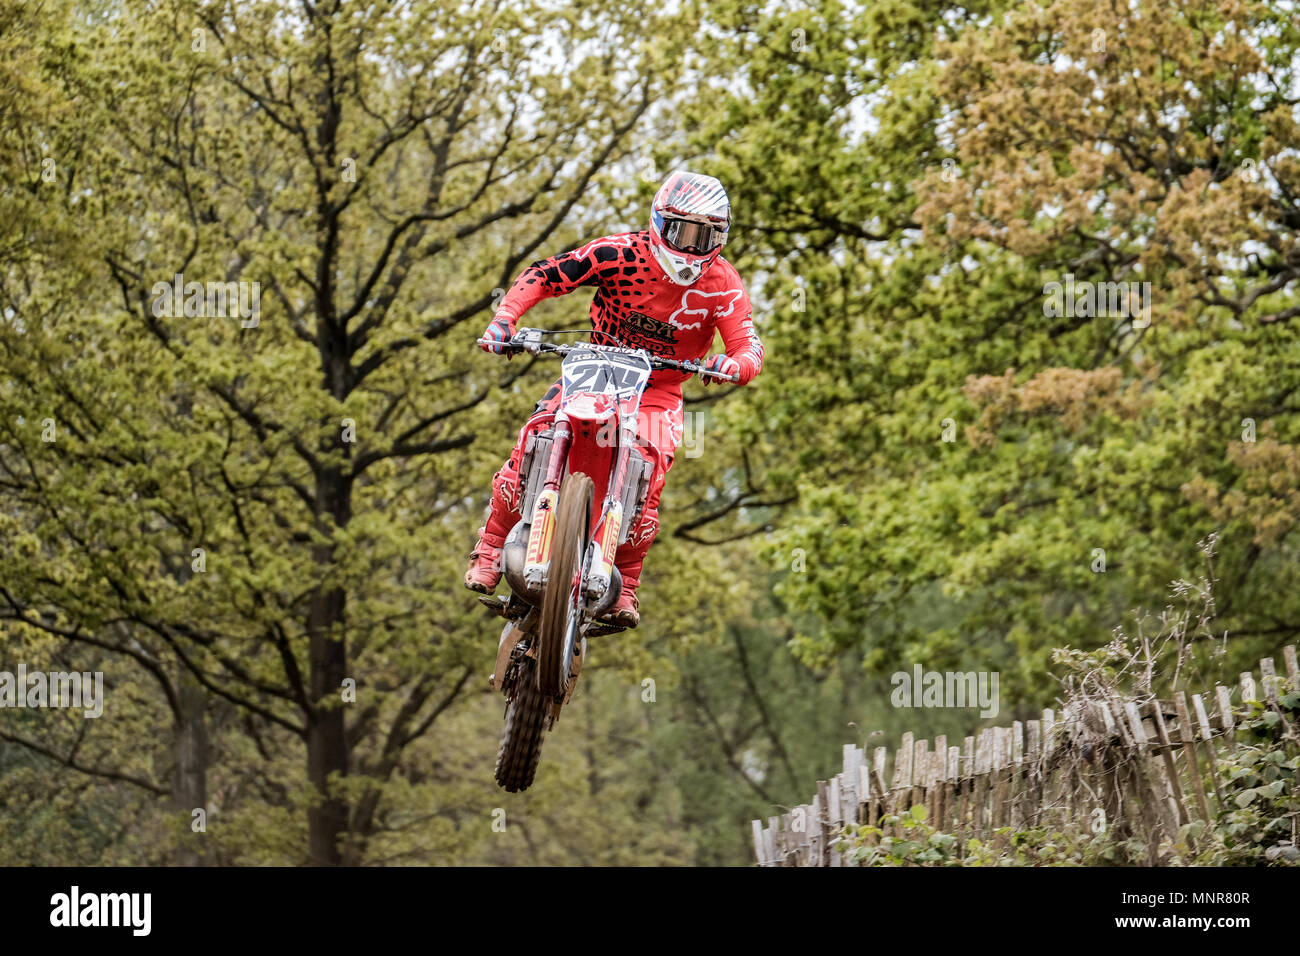 MX action from the 3rd round of the Maxxis British motocross championship at the Canada heights circuit - Stock Image